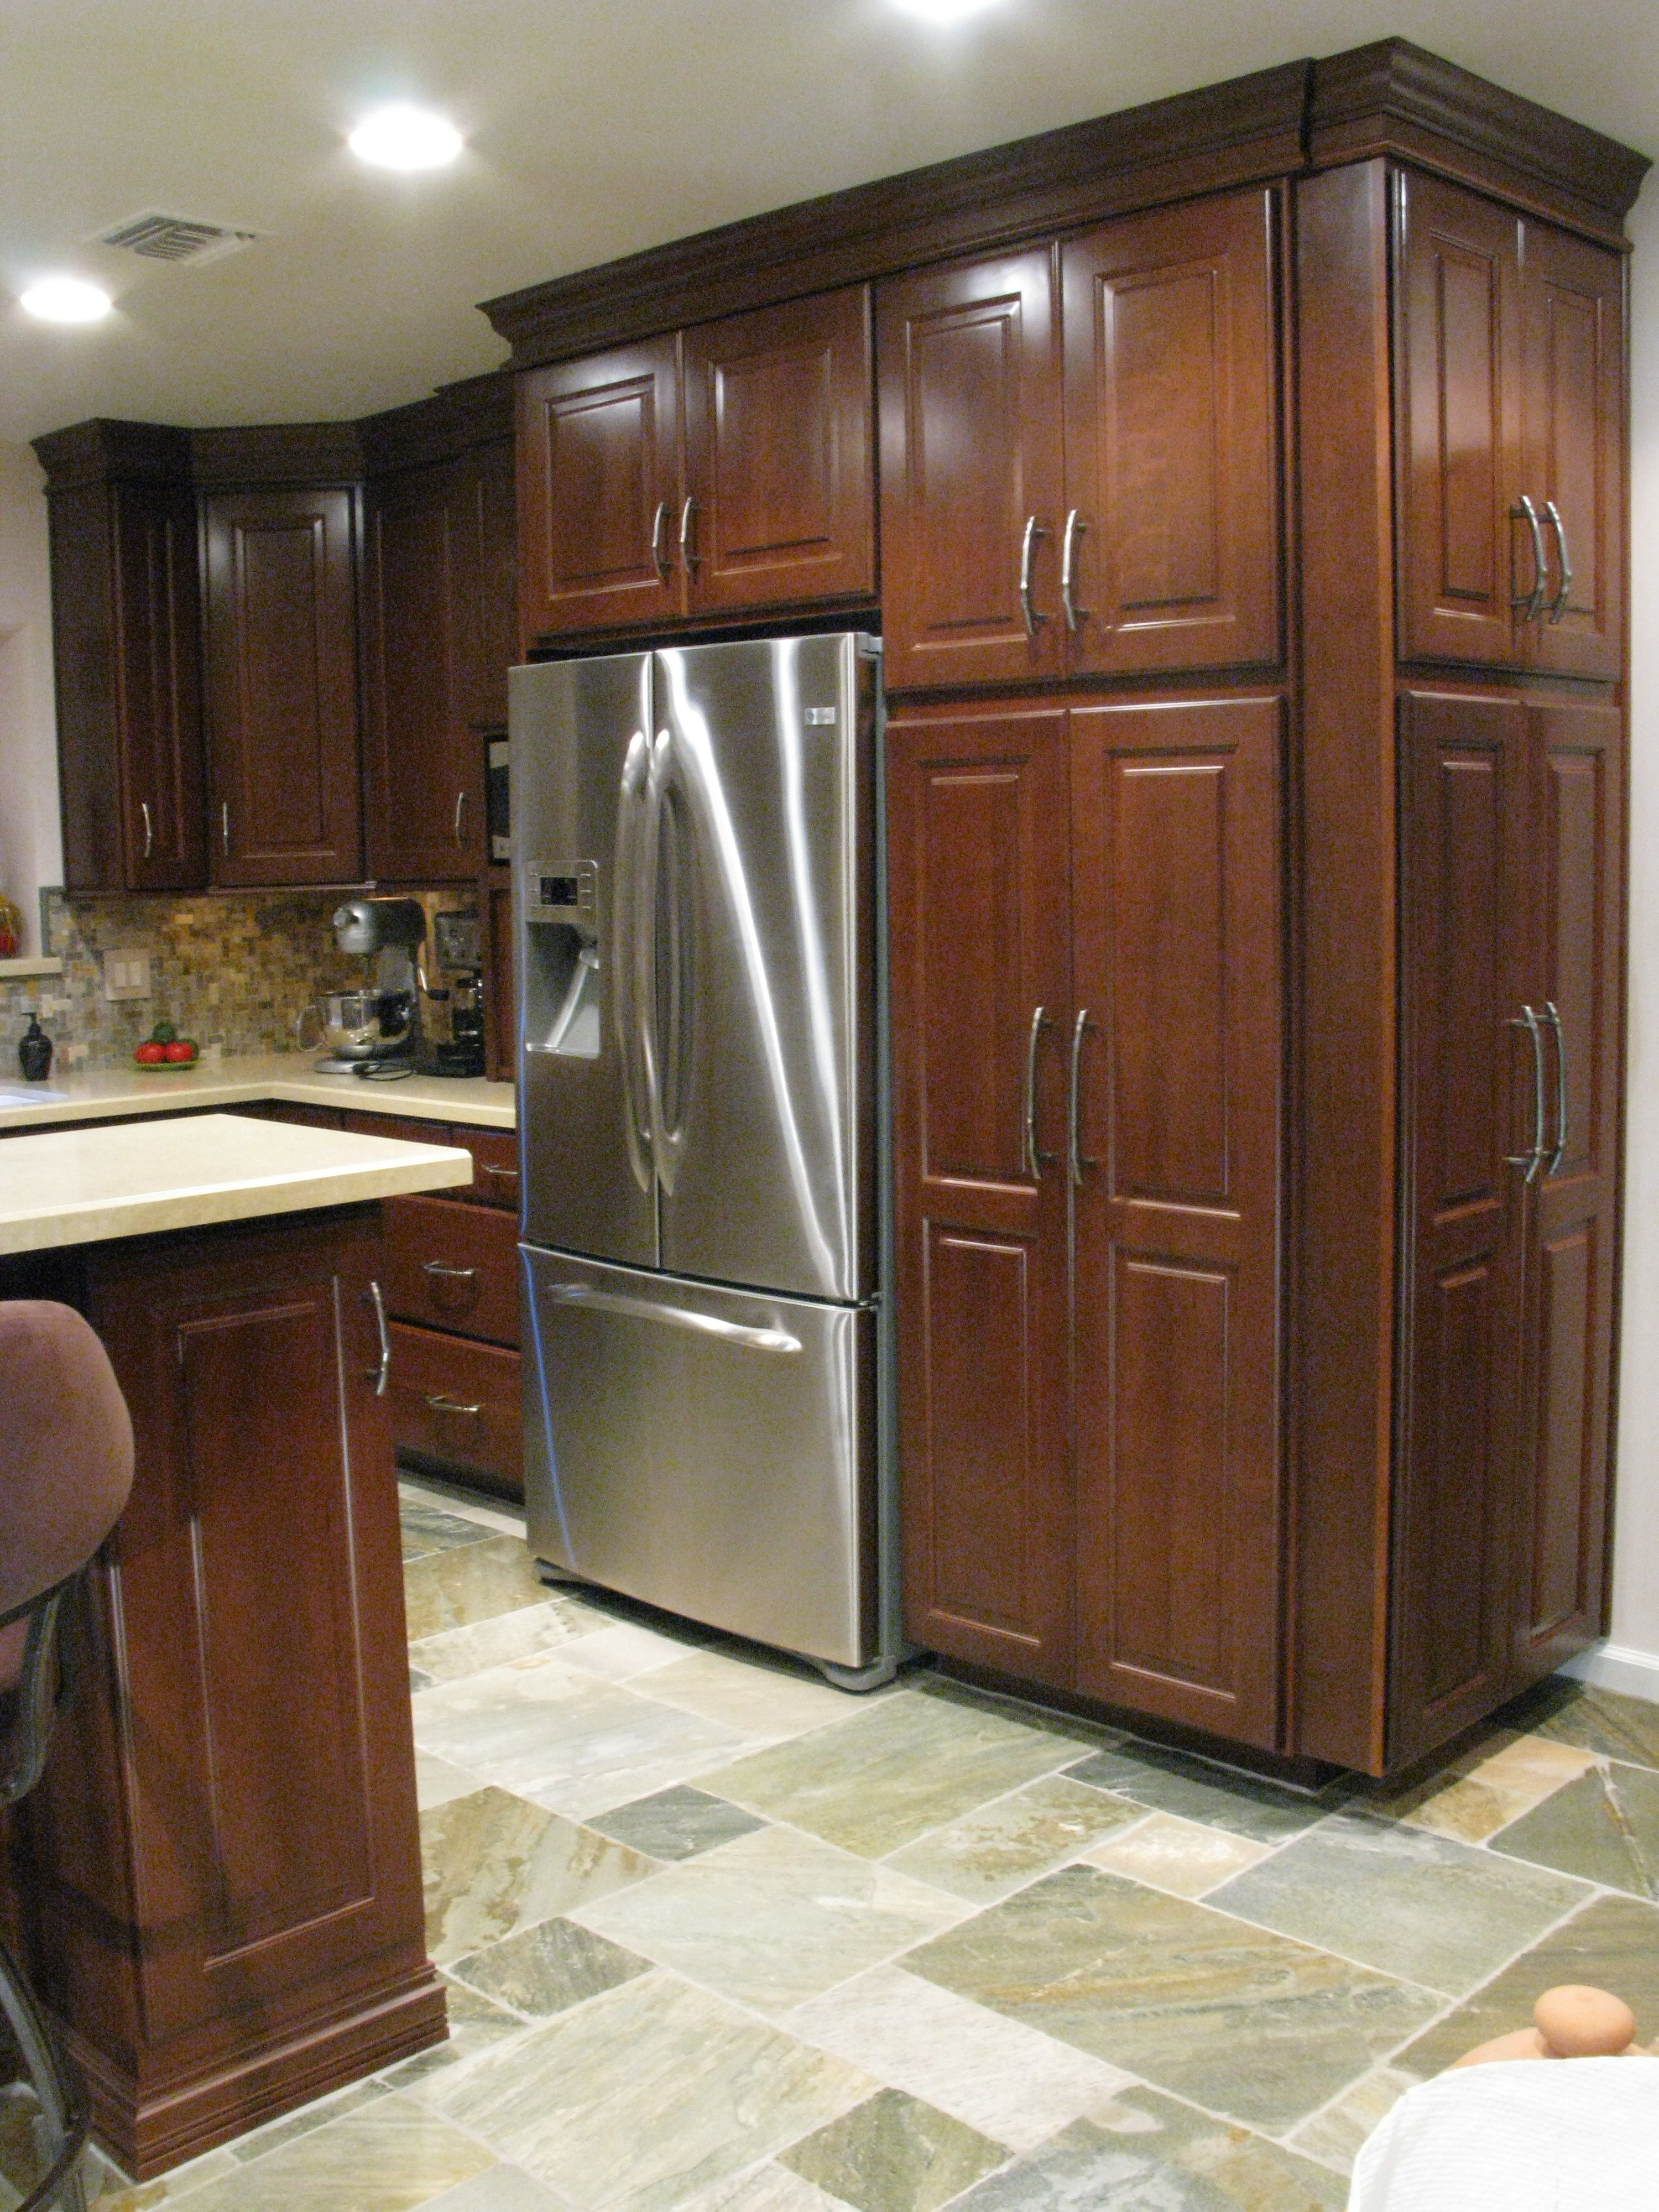 Dark Cherry Cabinets With Slate Floor Kitchen Flooring Cherry Cabinets Espresso Kitchen Cabinets